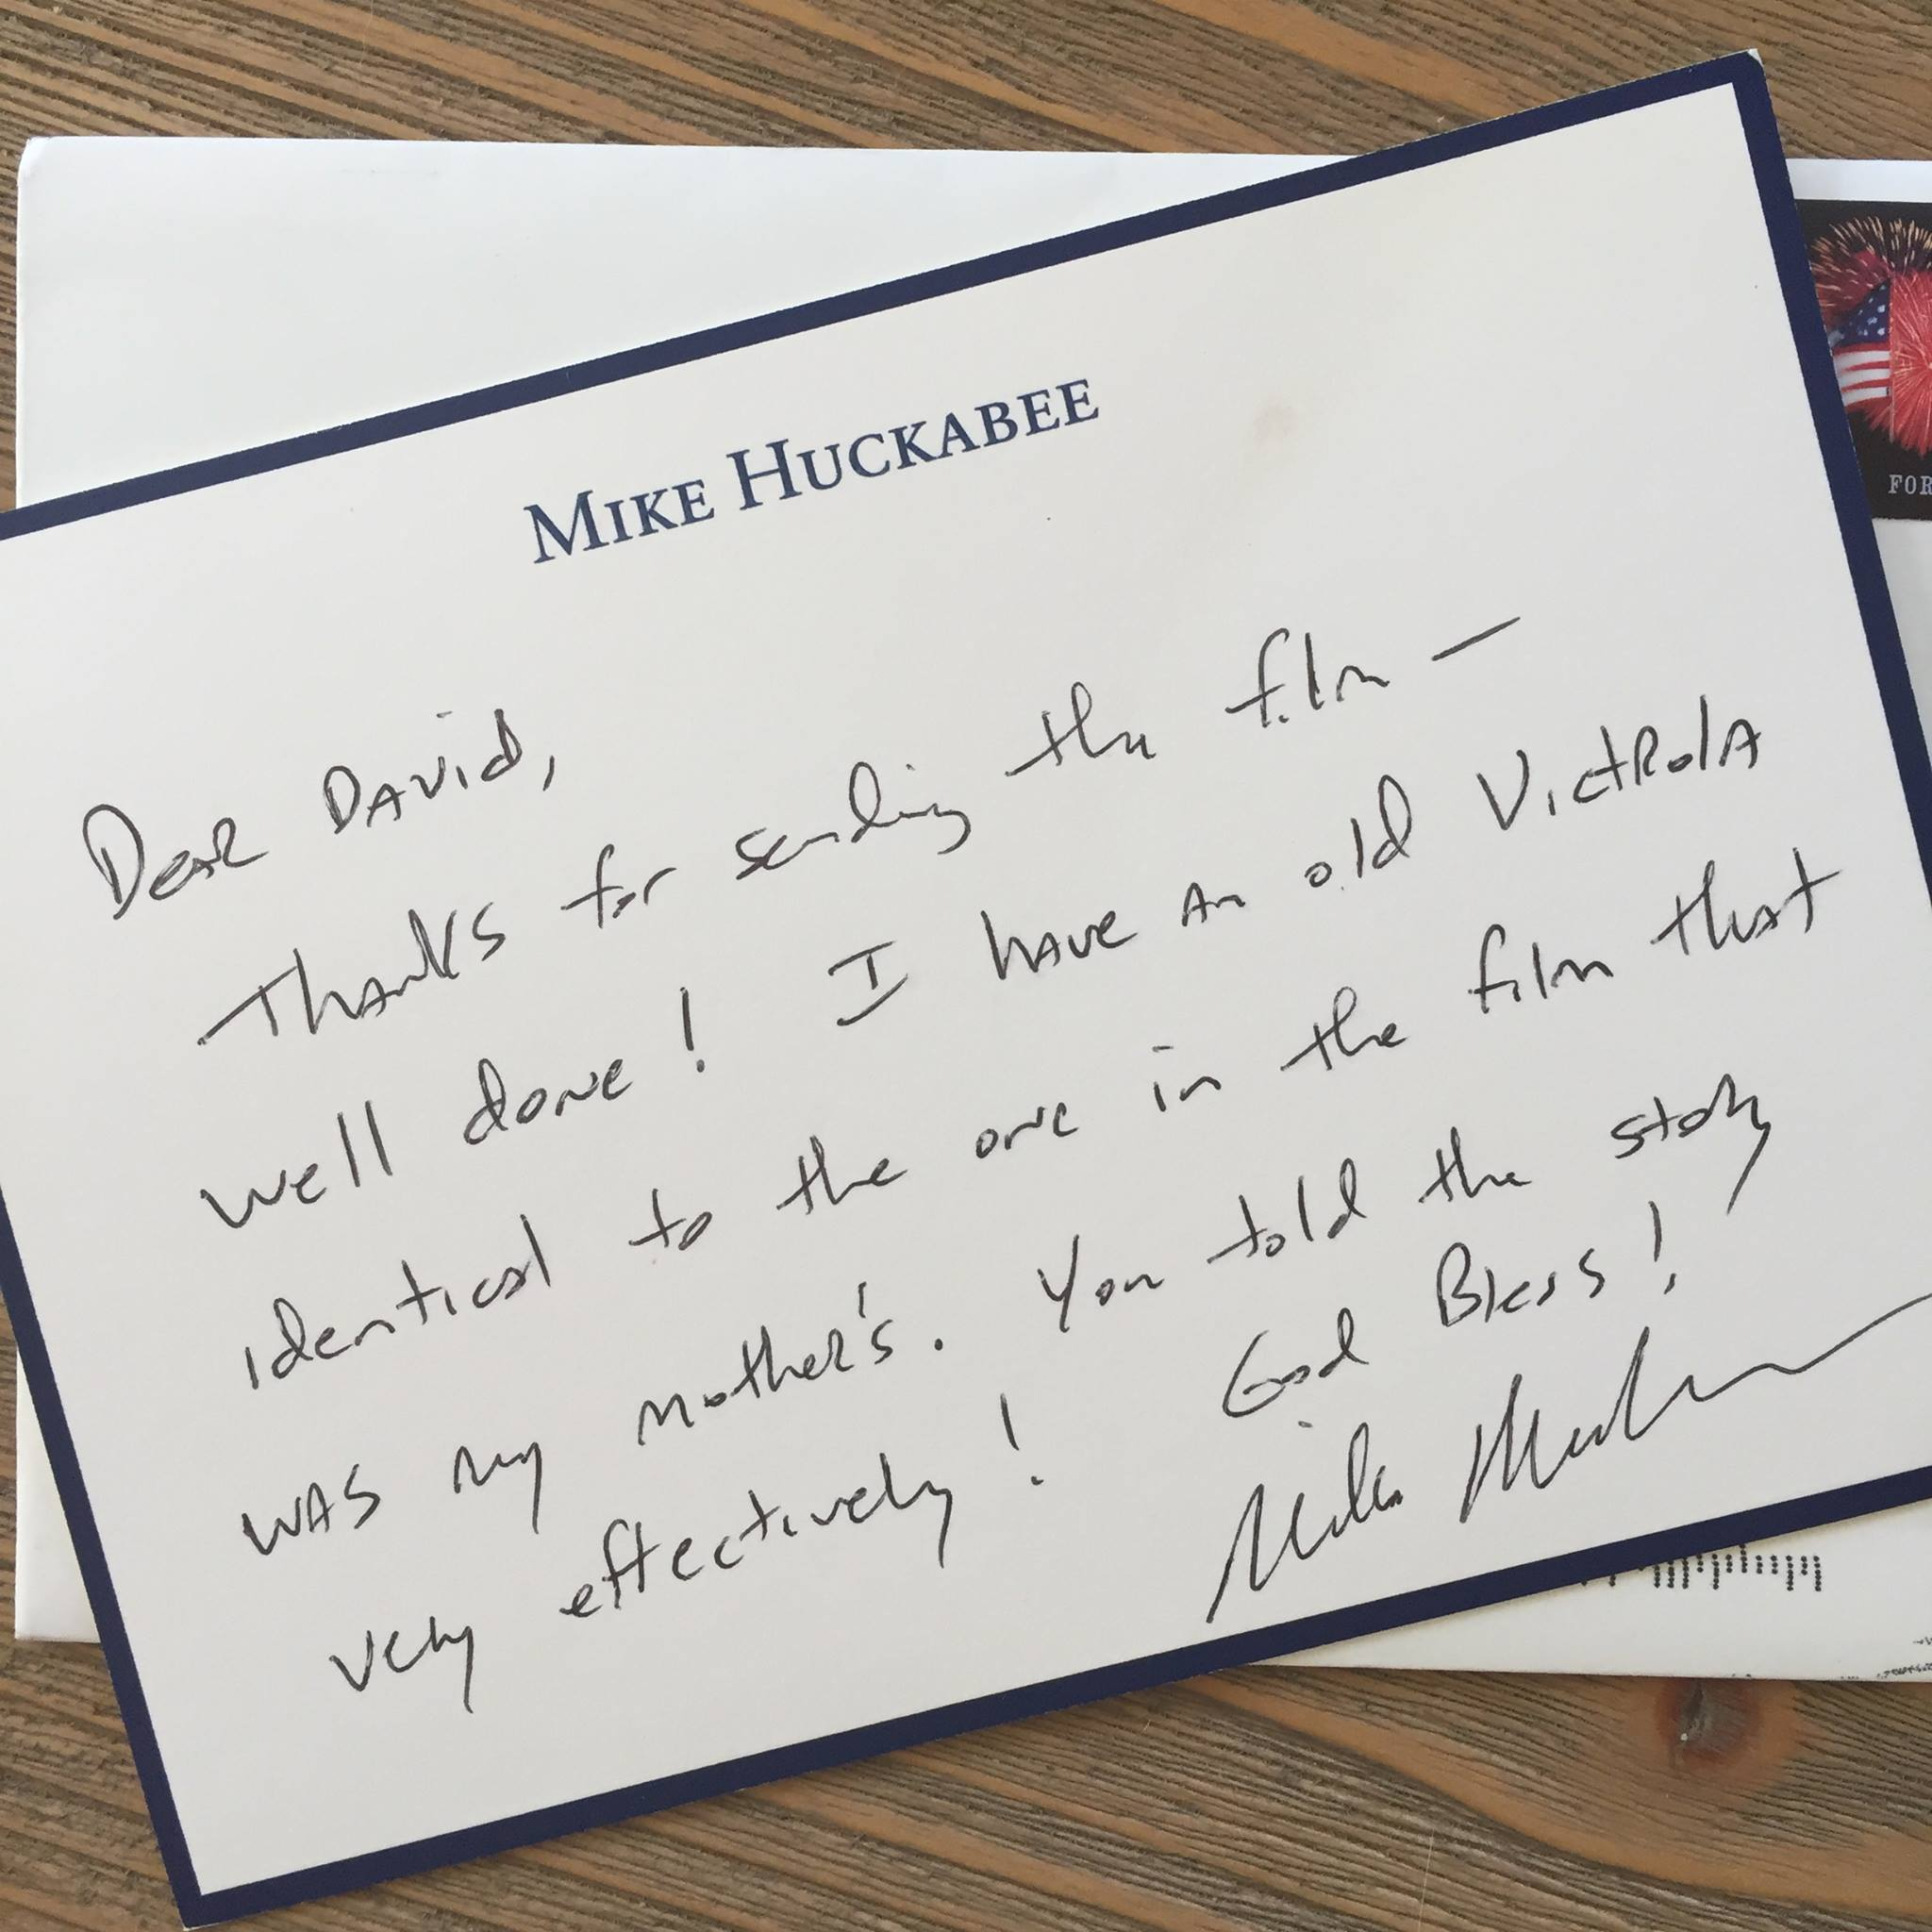 """Dear David, Thanks for sending the film- well done! I have an old Victrola identical to the one in the film that was my mother's. You told the story very effectively! God Bless! -Mike Huckabee"""